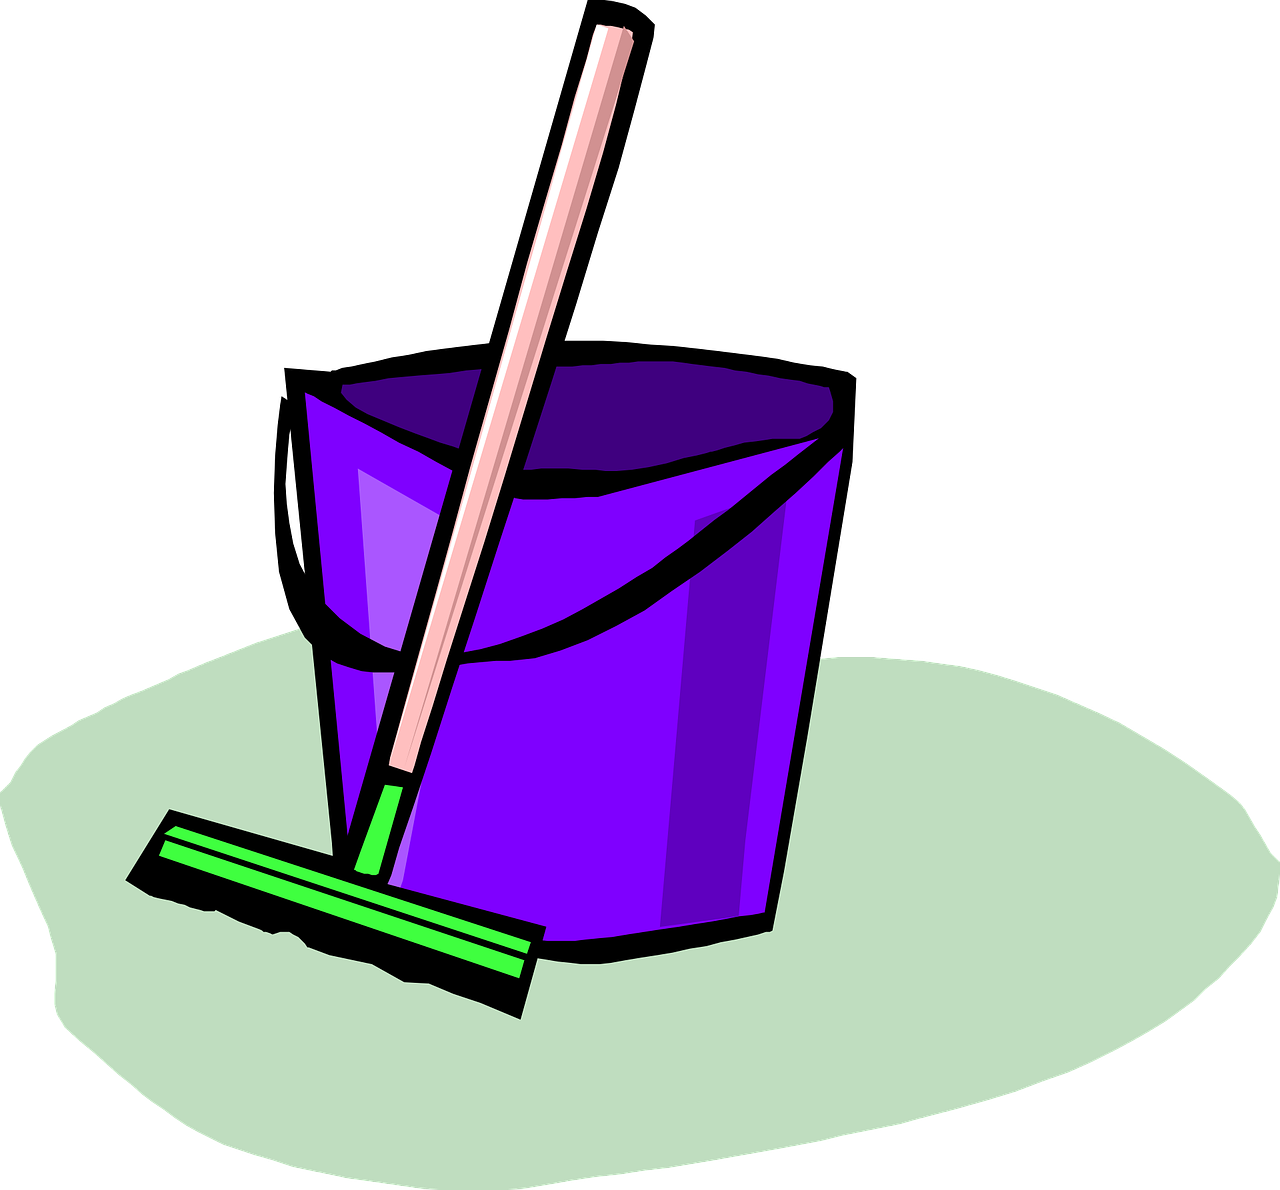 Clean clipart clean environment. Green cleaning preventing indoor